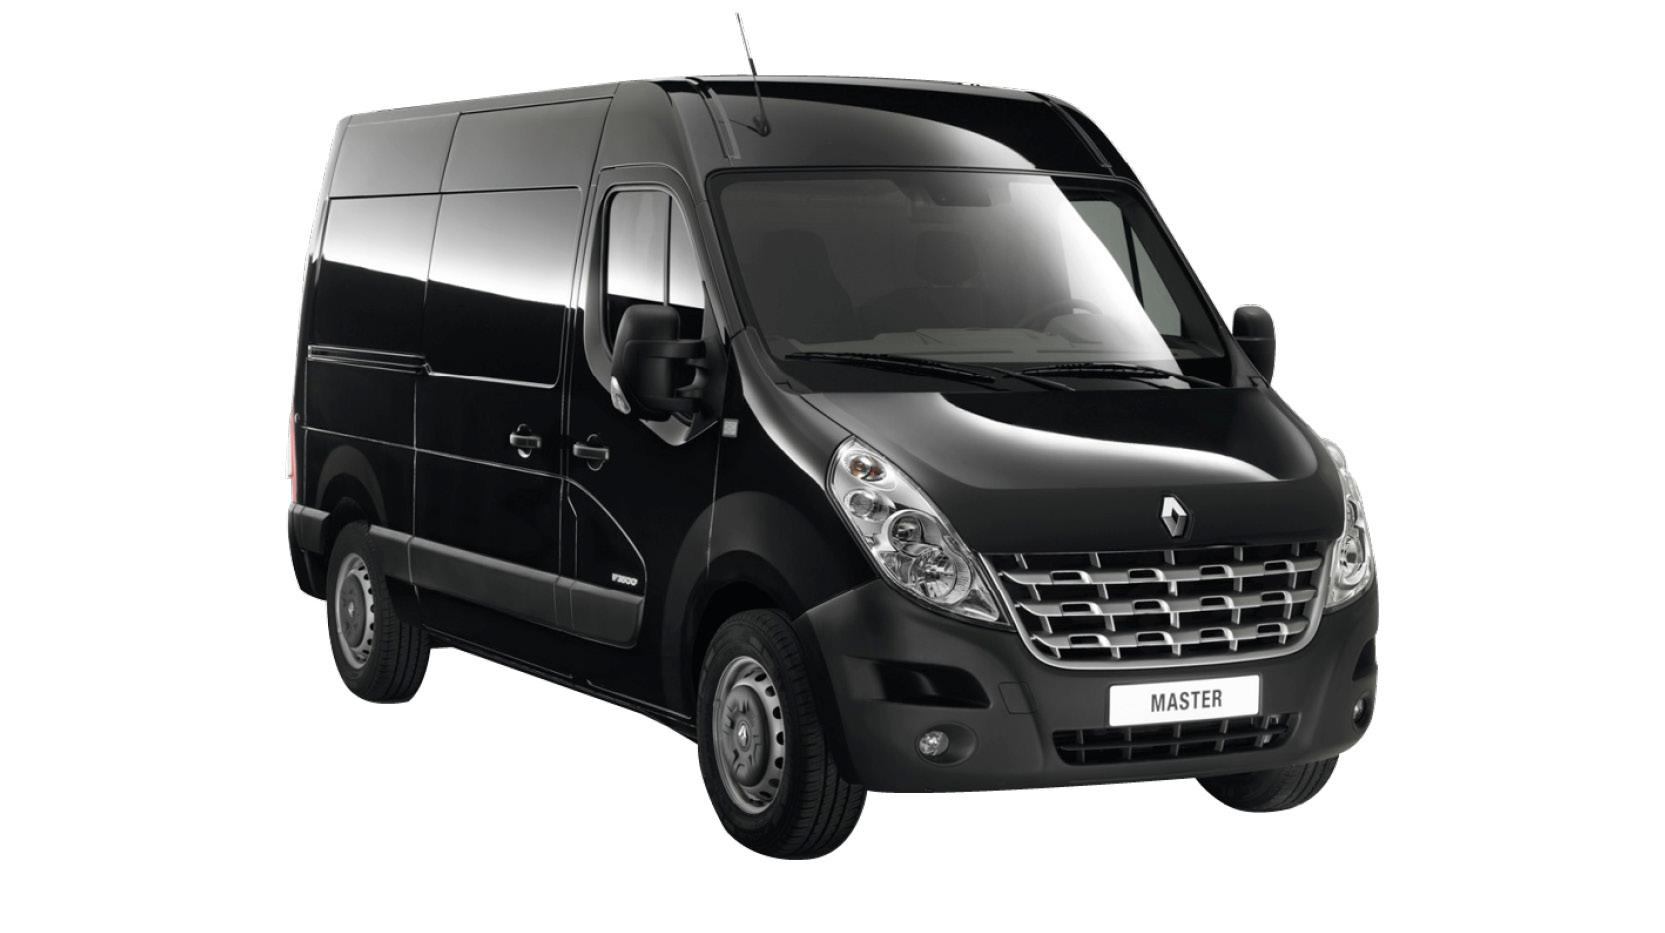 Luchtvering voor Renault Master | Trapmann Air Suspension